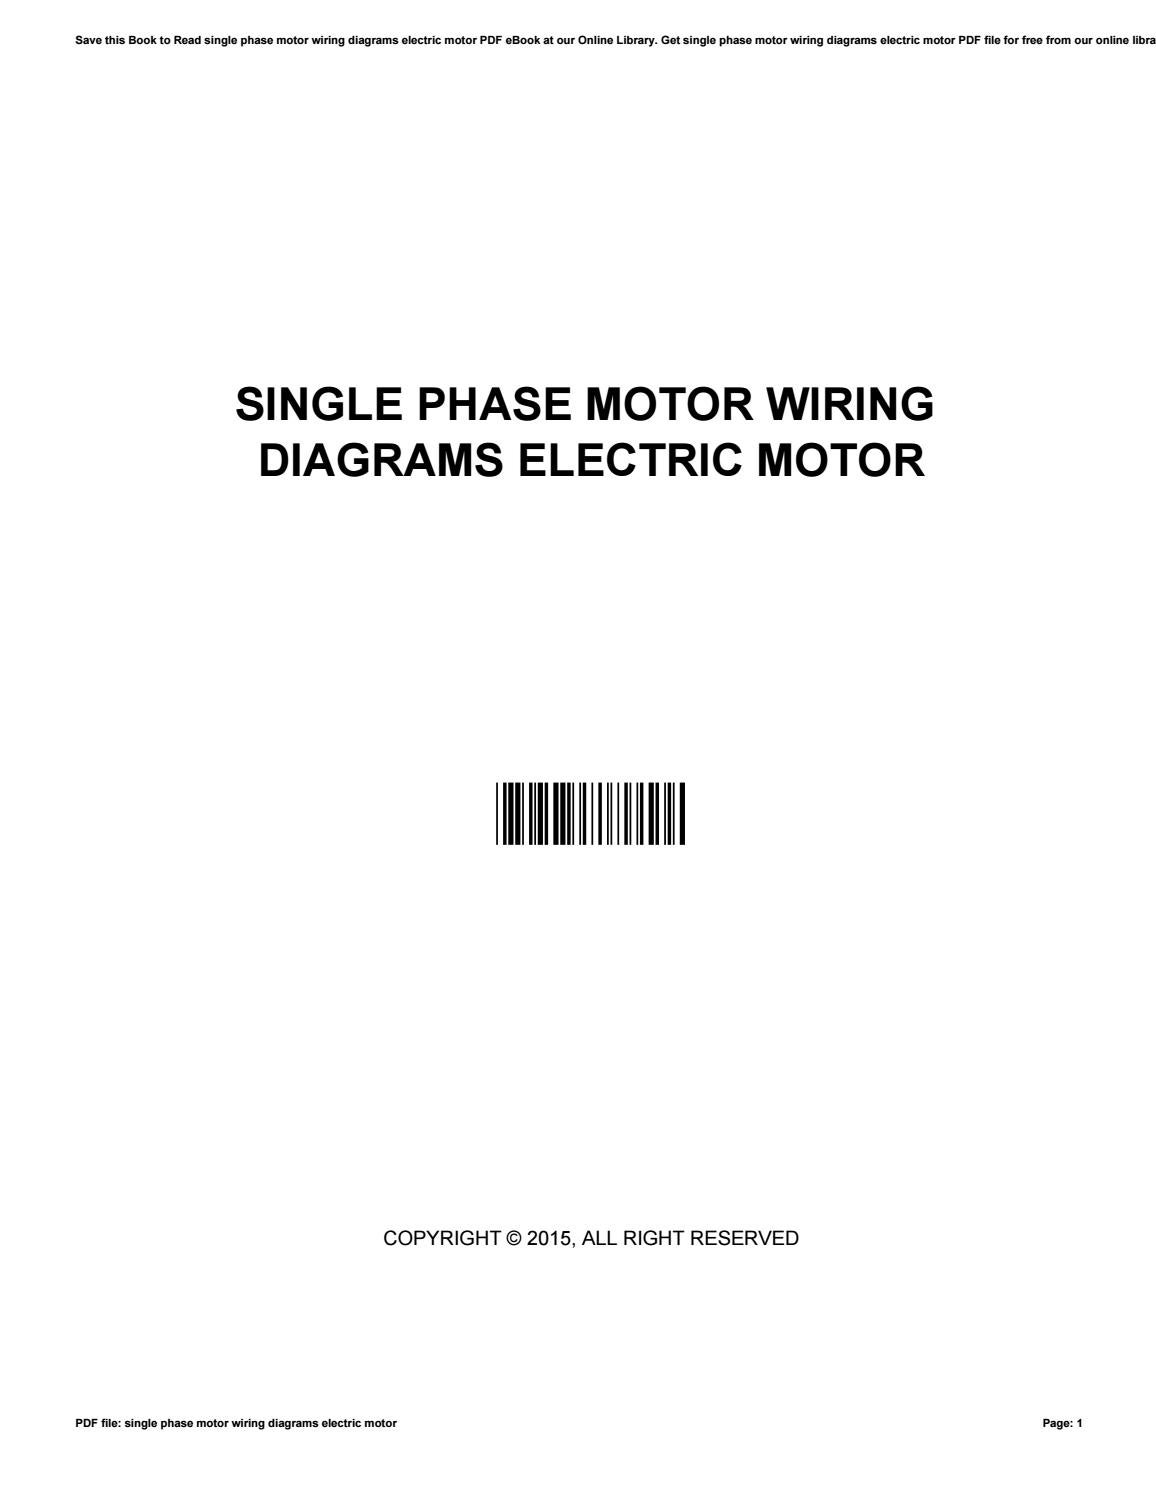 Single phase motor wiring diagrams electric motor by ...